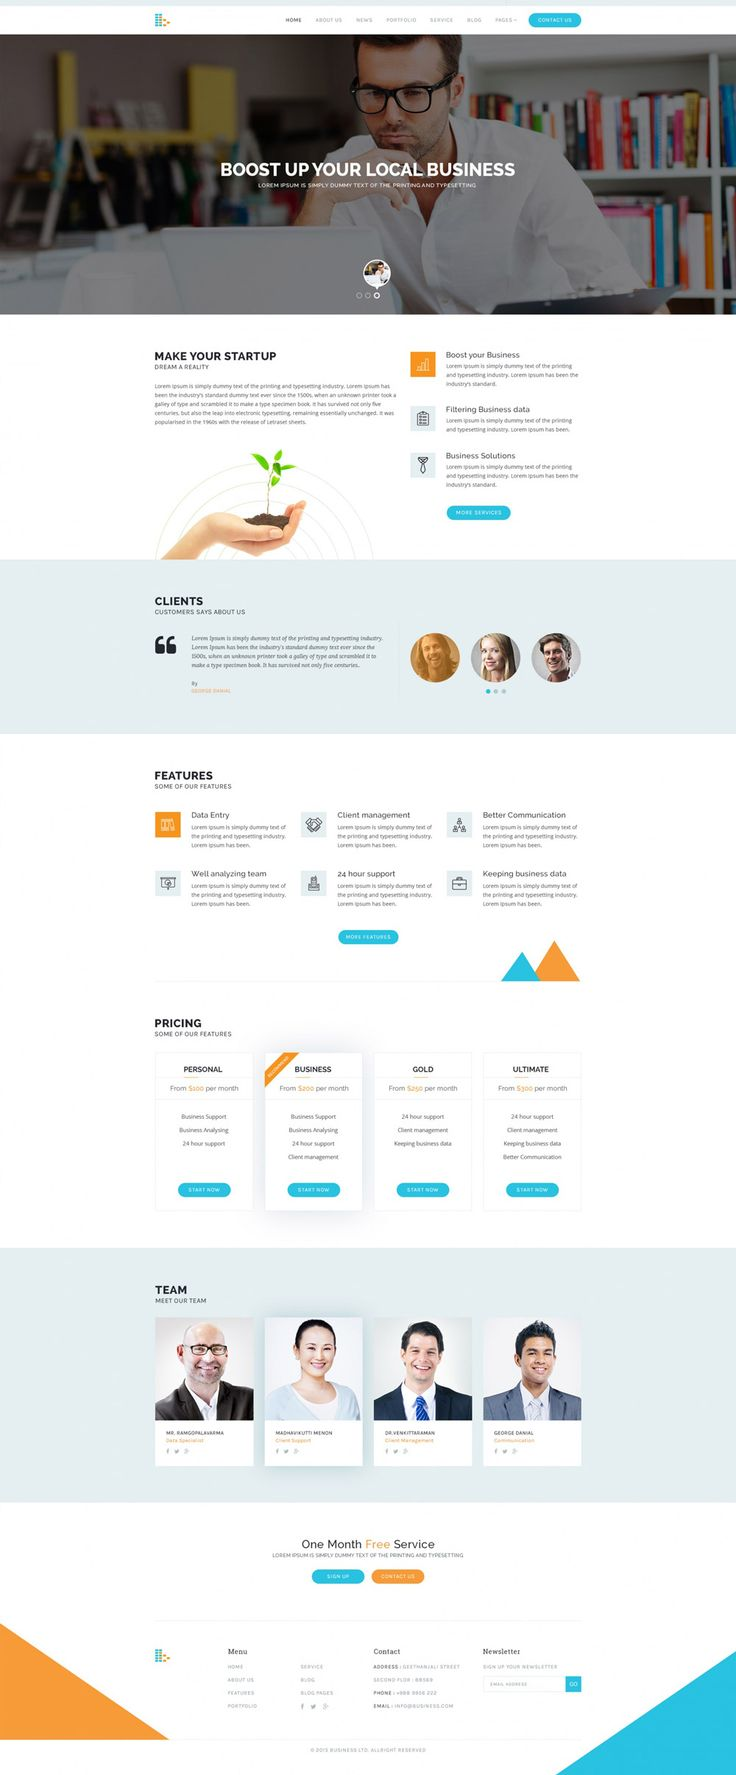 15 best Template images on Pinterest | Fonts, Ui kit and Cars